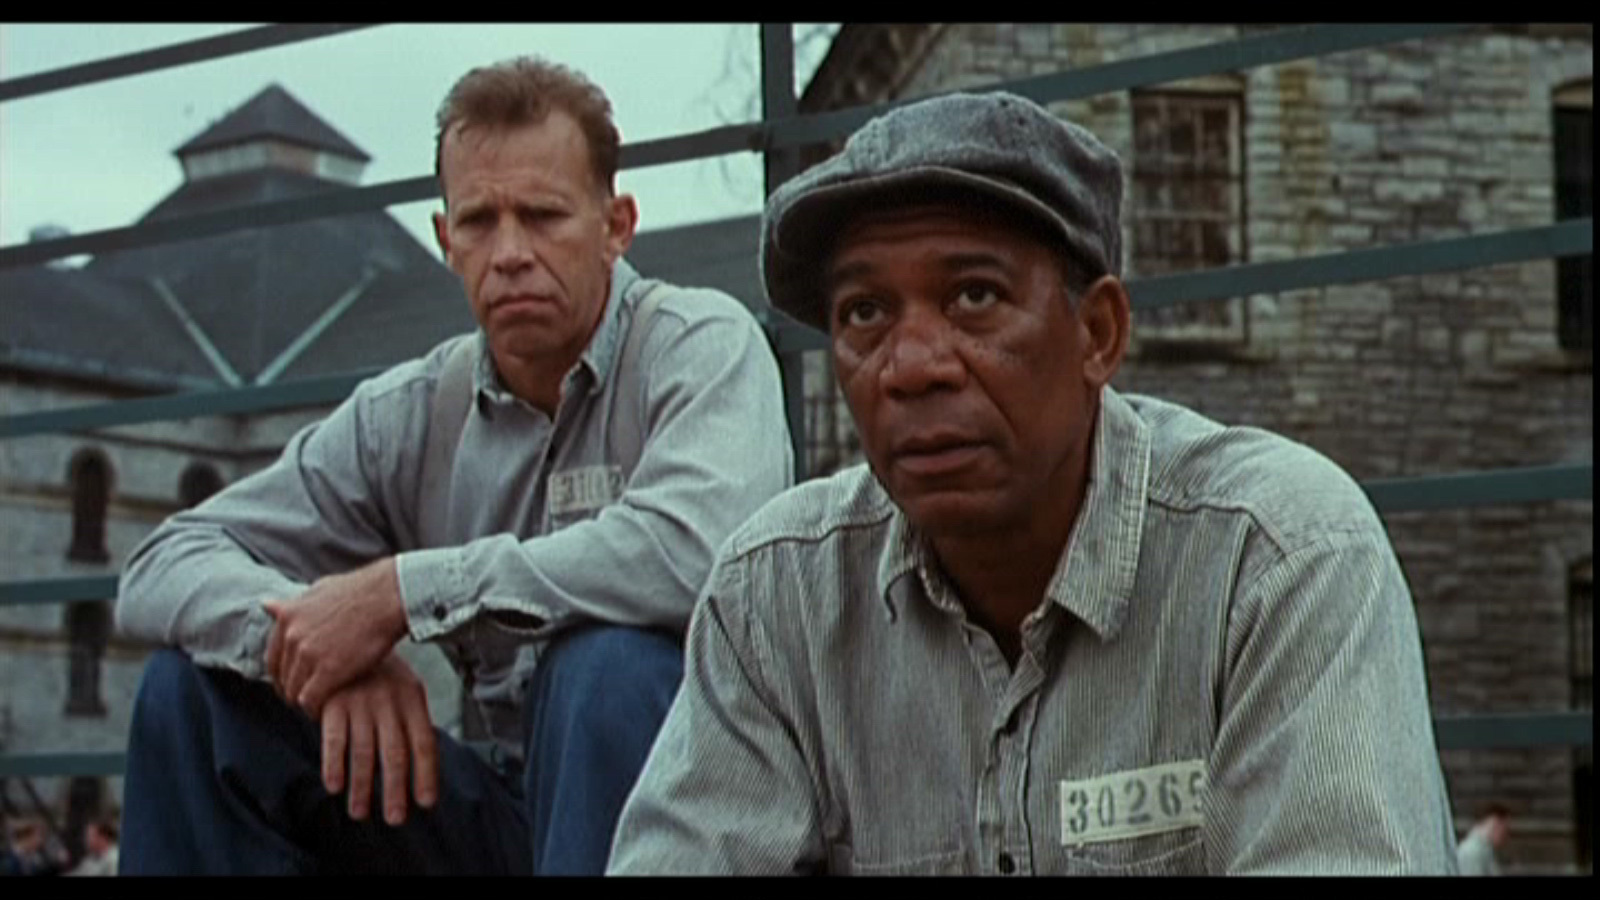 the shawshank redemption analysis Critical analysis of the shawshank redemption the shawshank redemption is a 1994 movie written and directed by frank darabont, featuring ti.